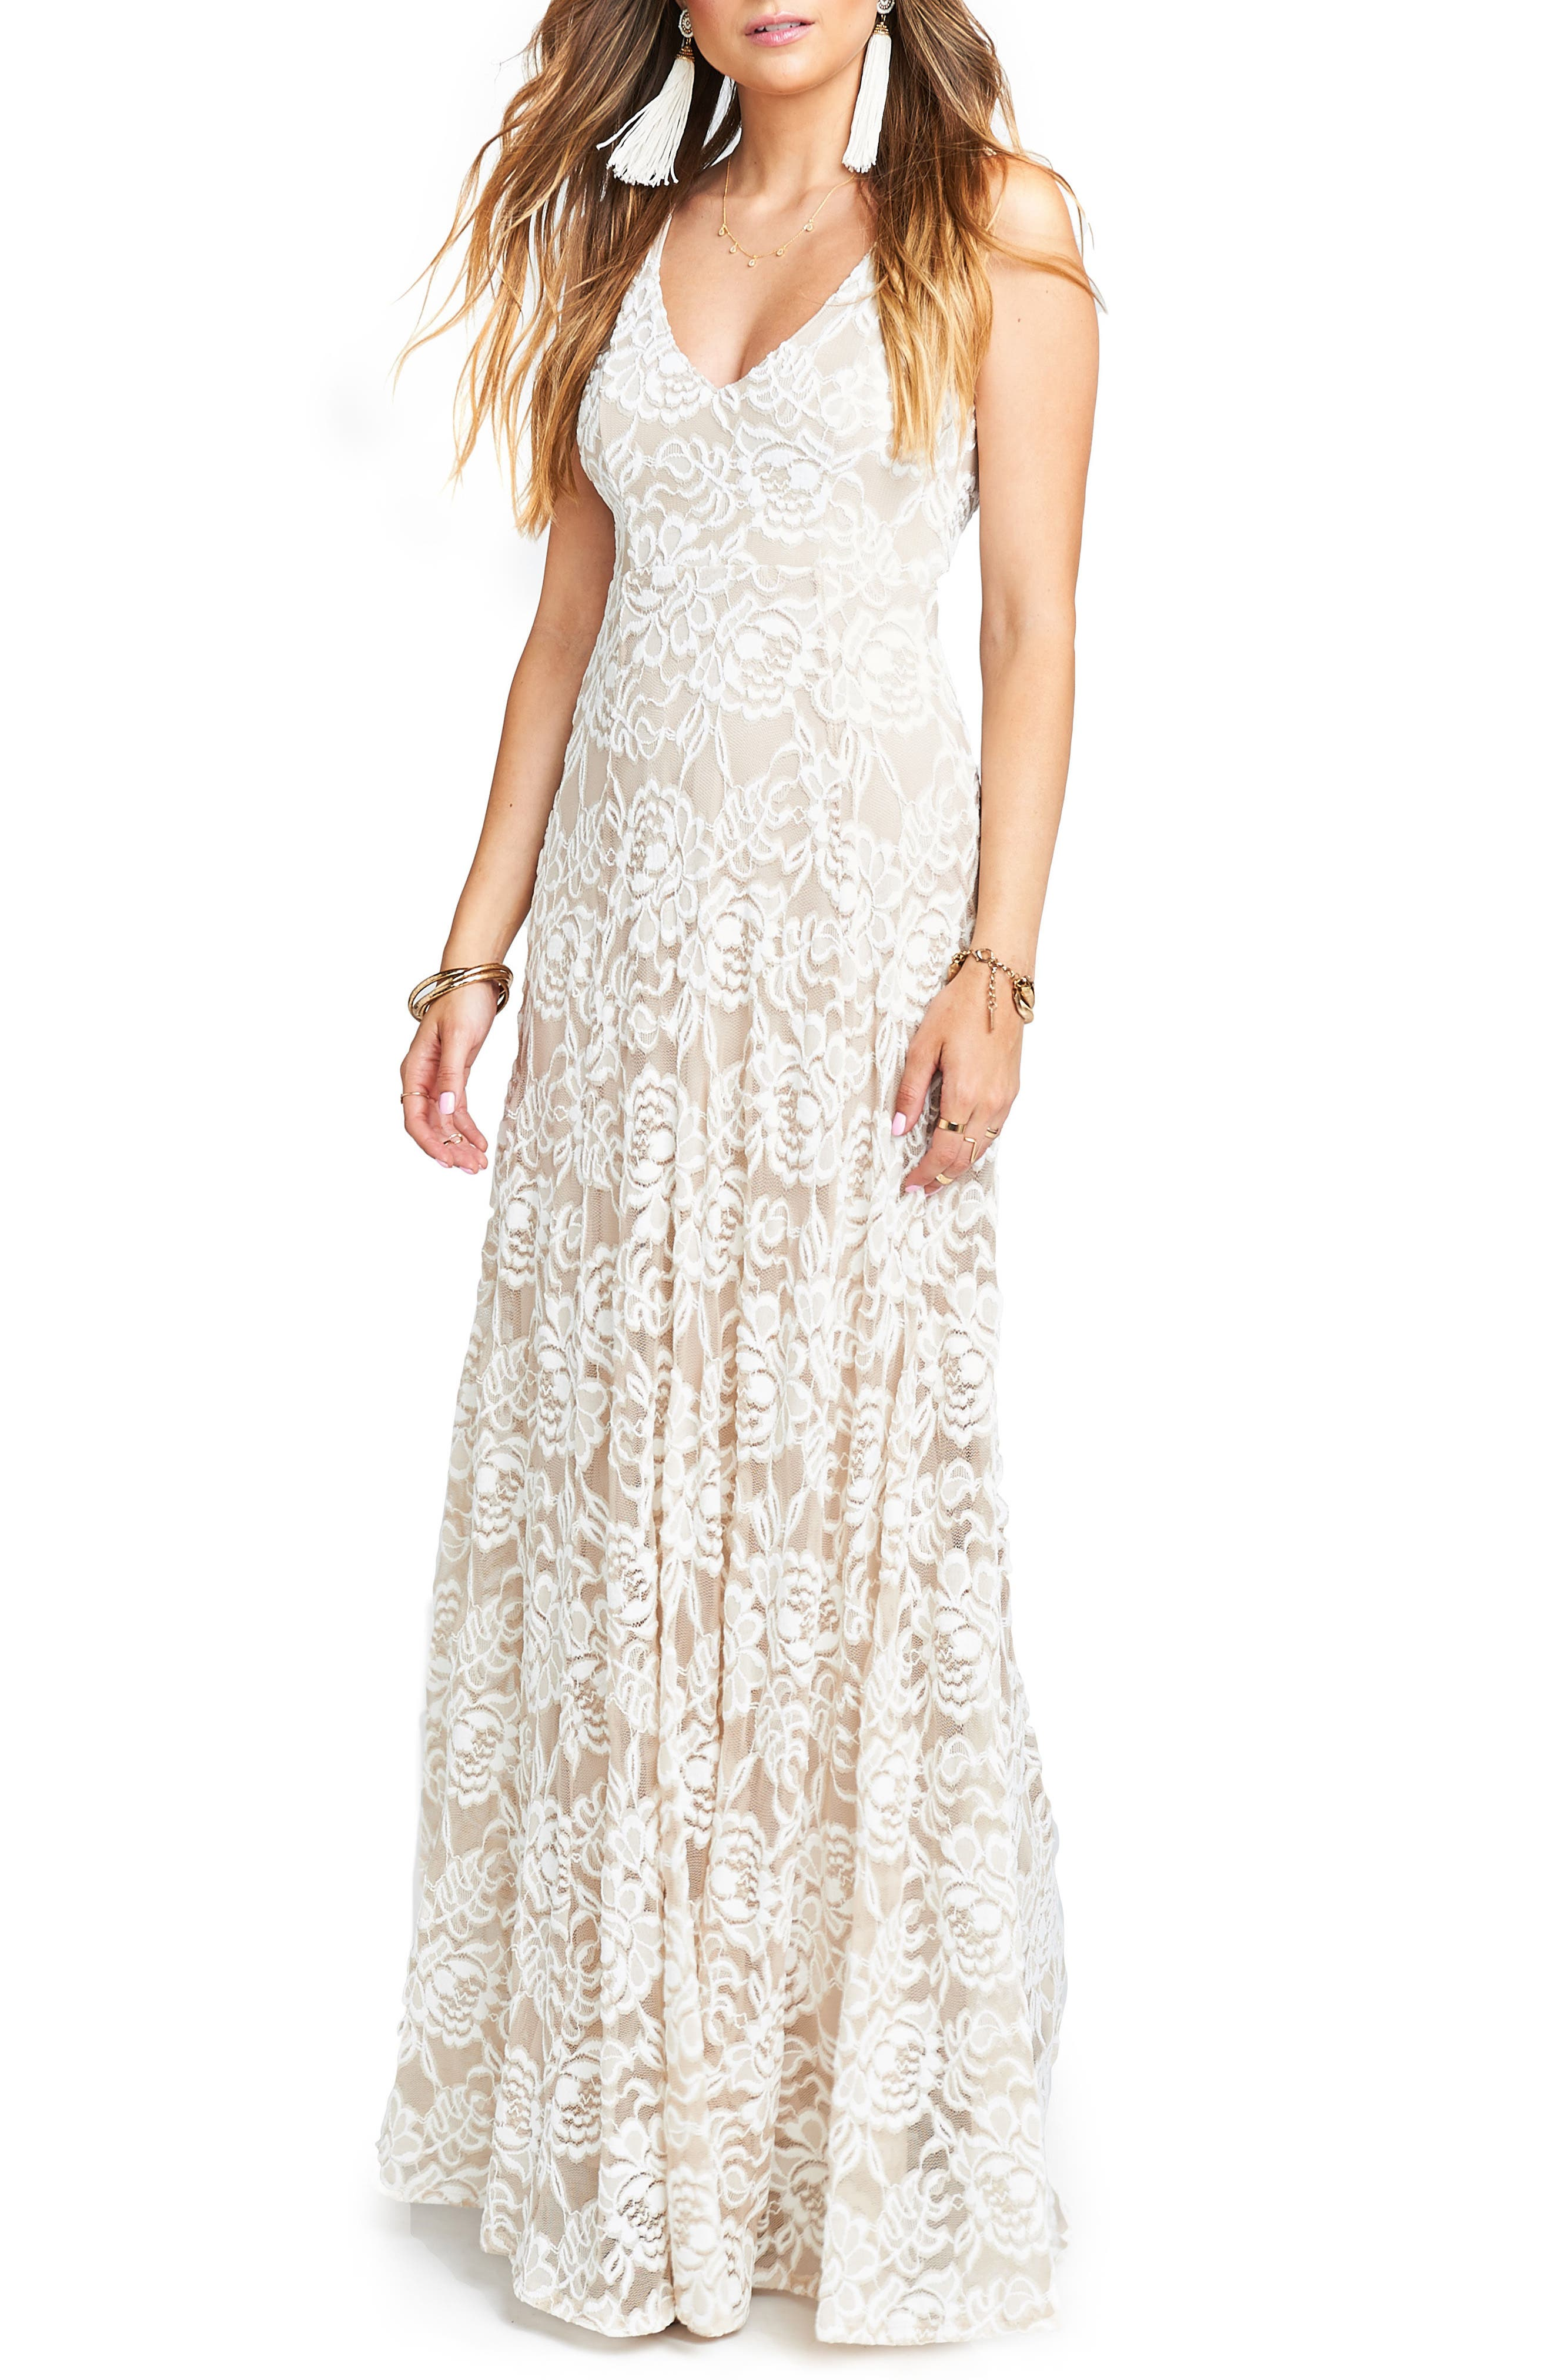 Jen Lace Dress,                         Main,                         color, Lovers Lace Show Me The Ring